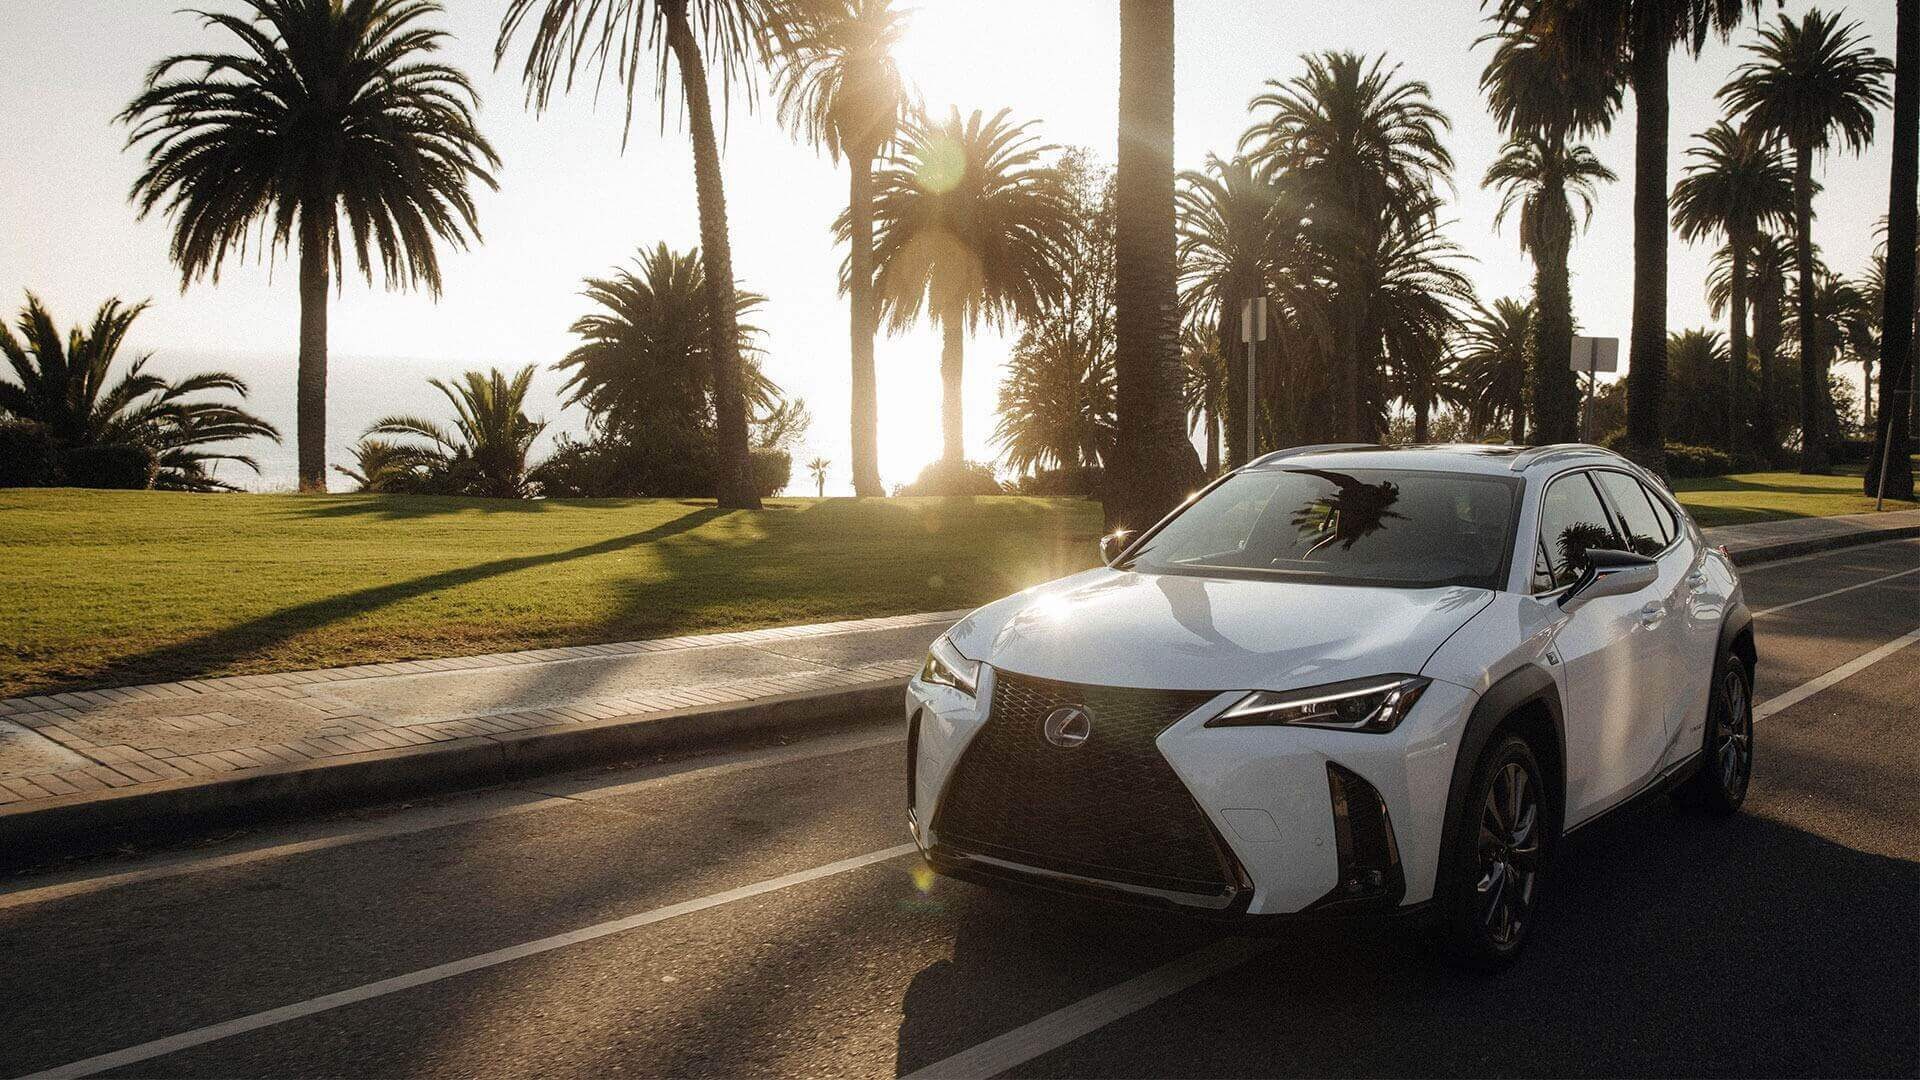 2019 lexus jit episode 3 ux gallery 10